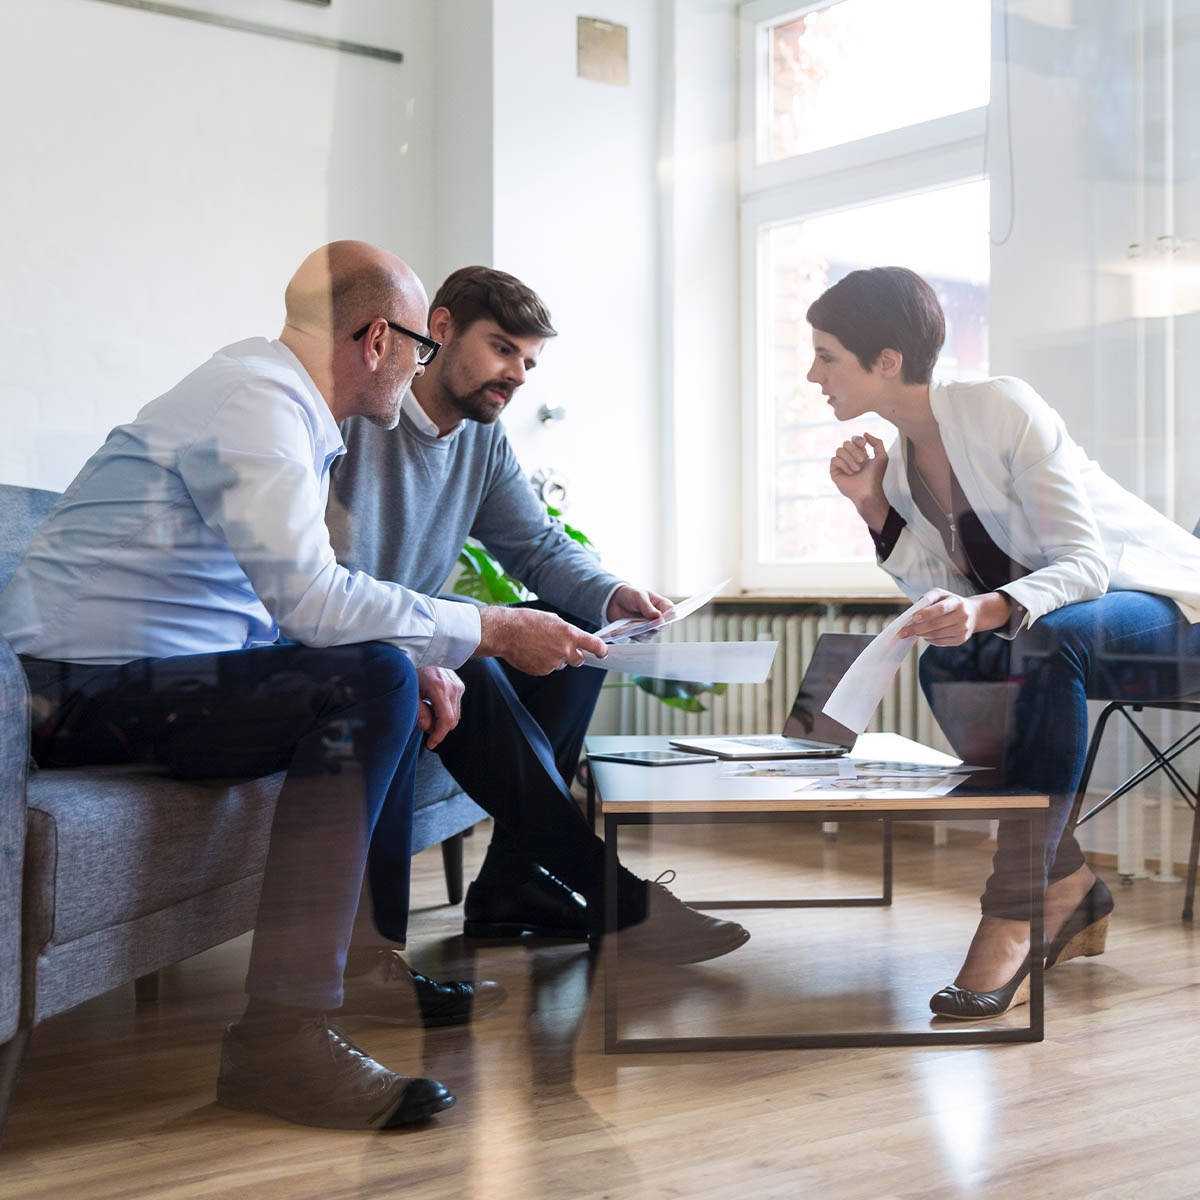 Three colleagues, two male and one female sitting in a casual boardroom having a meeting during the day.